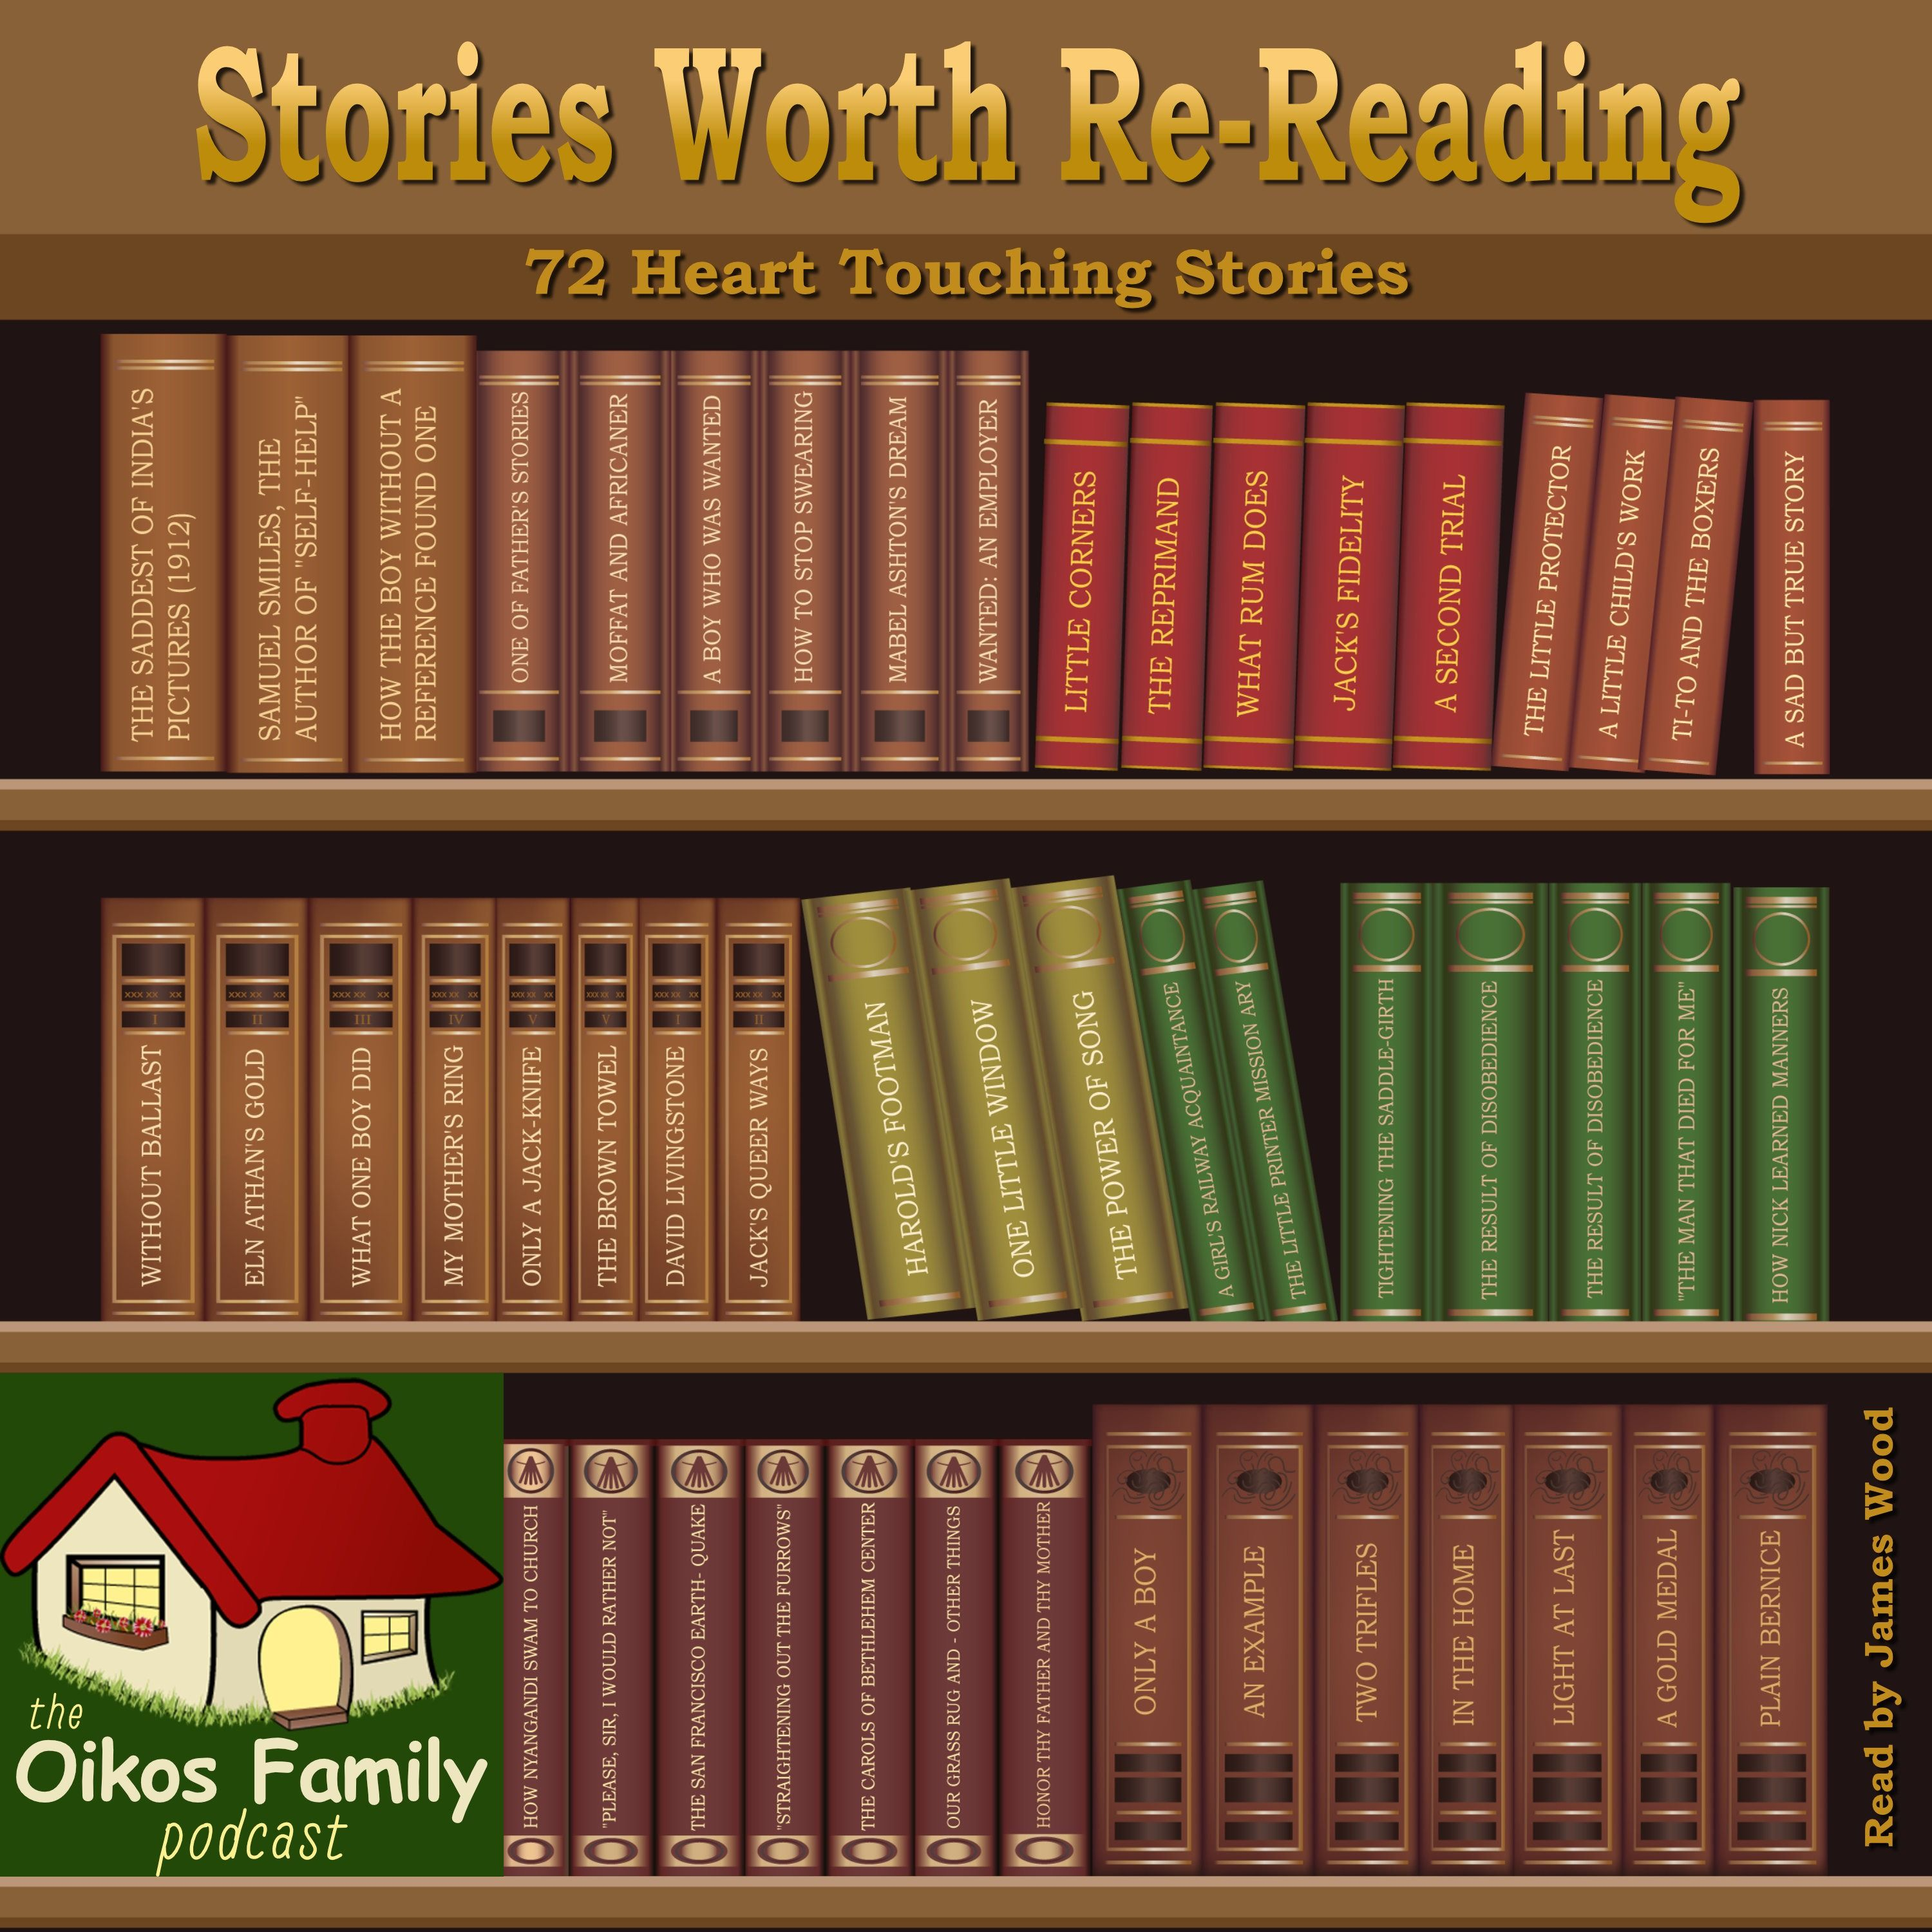 Stories Worth Re-Reading: Little Corners